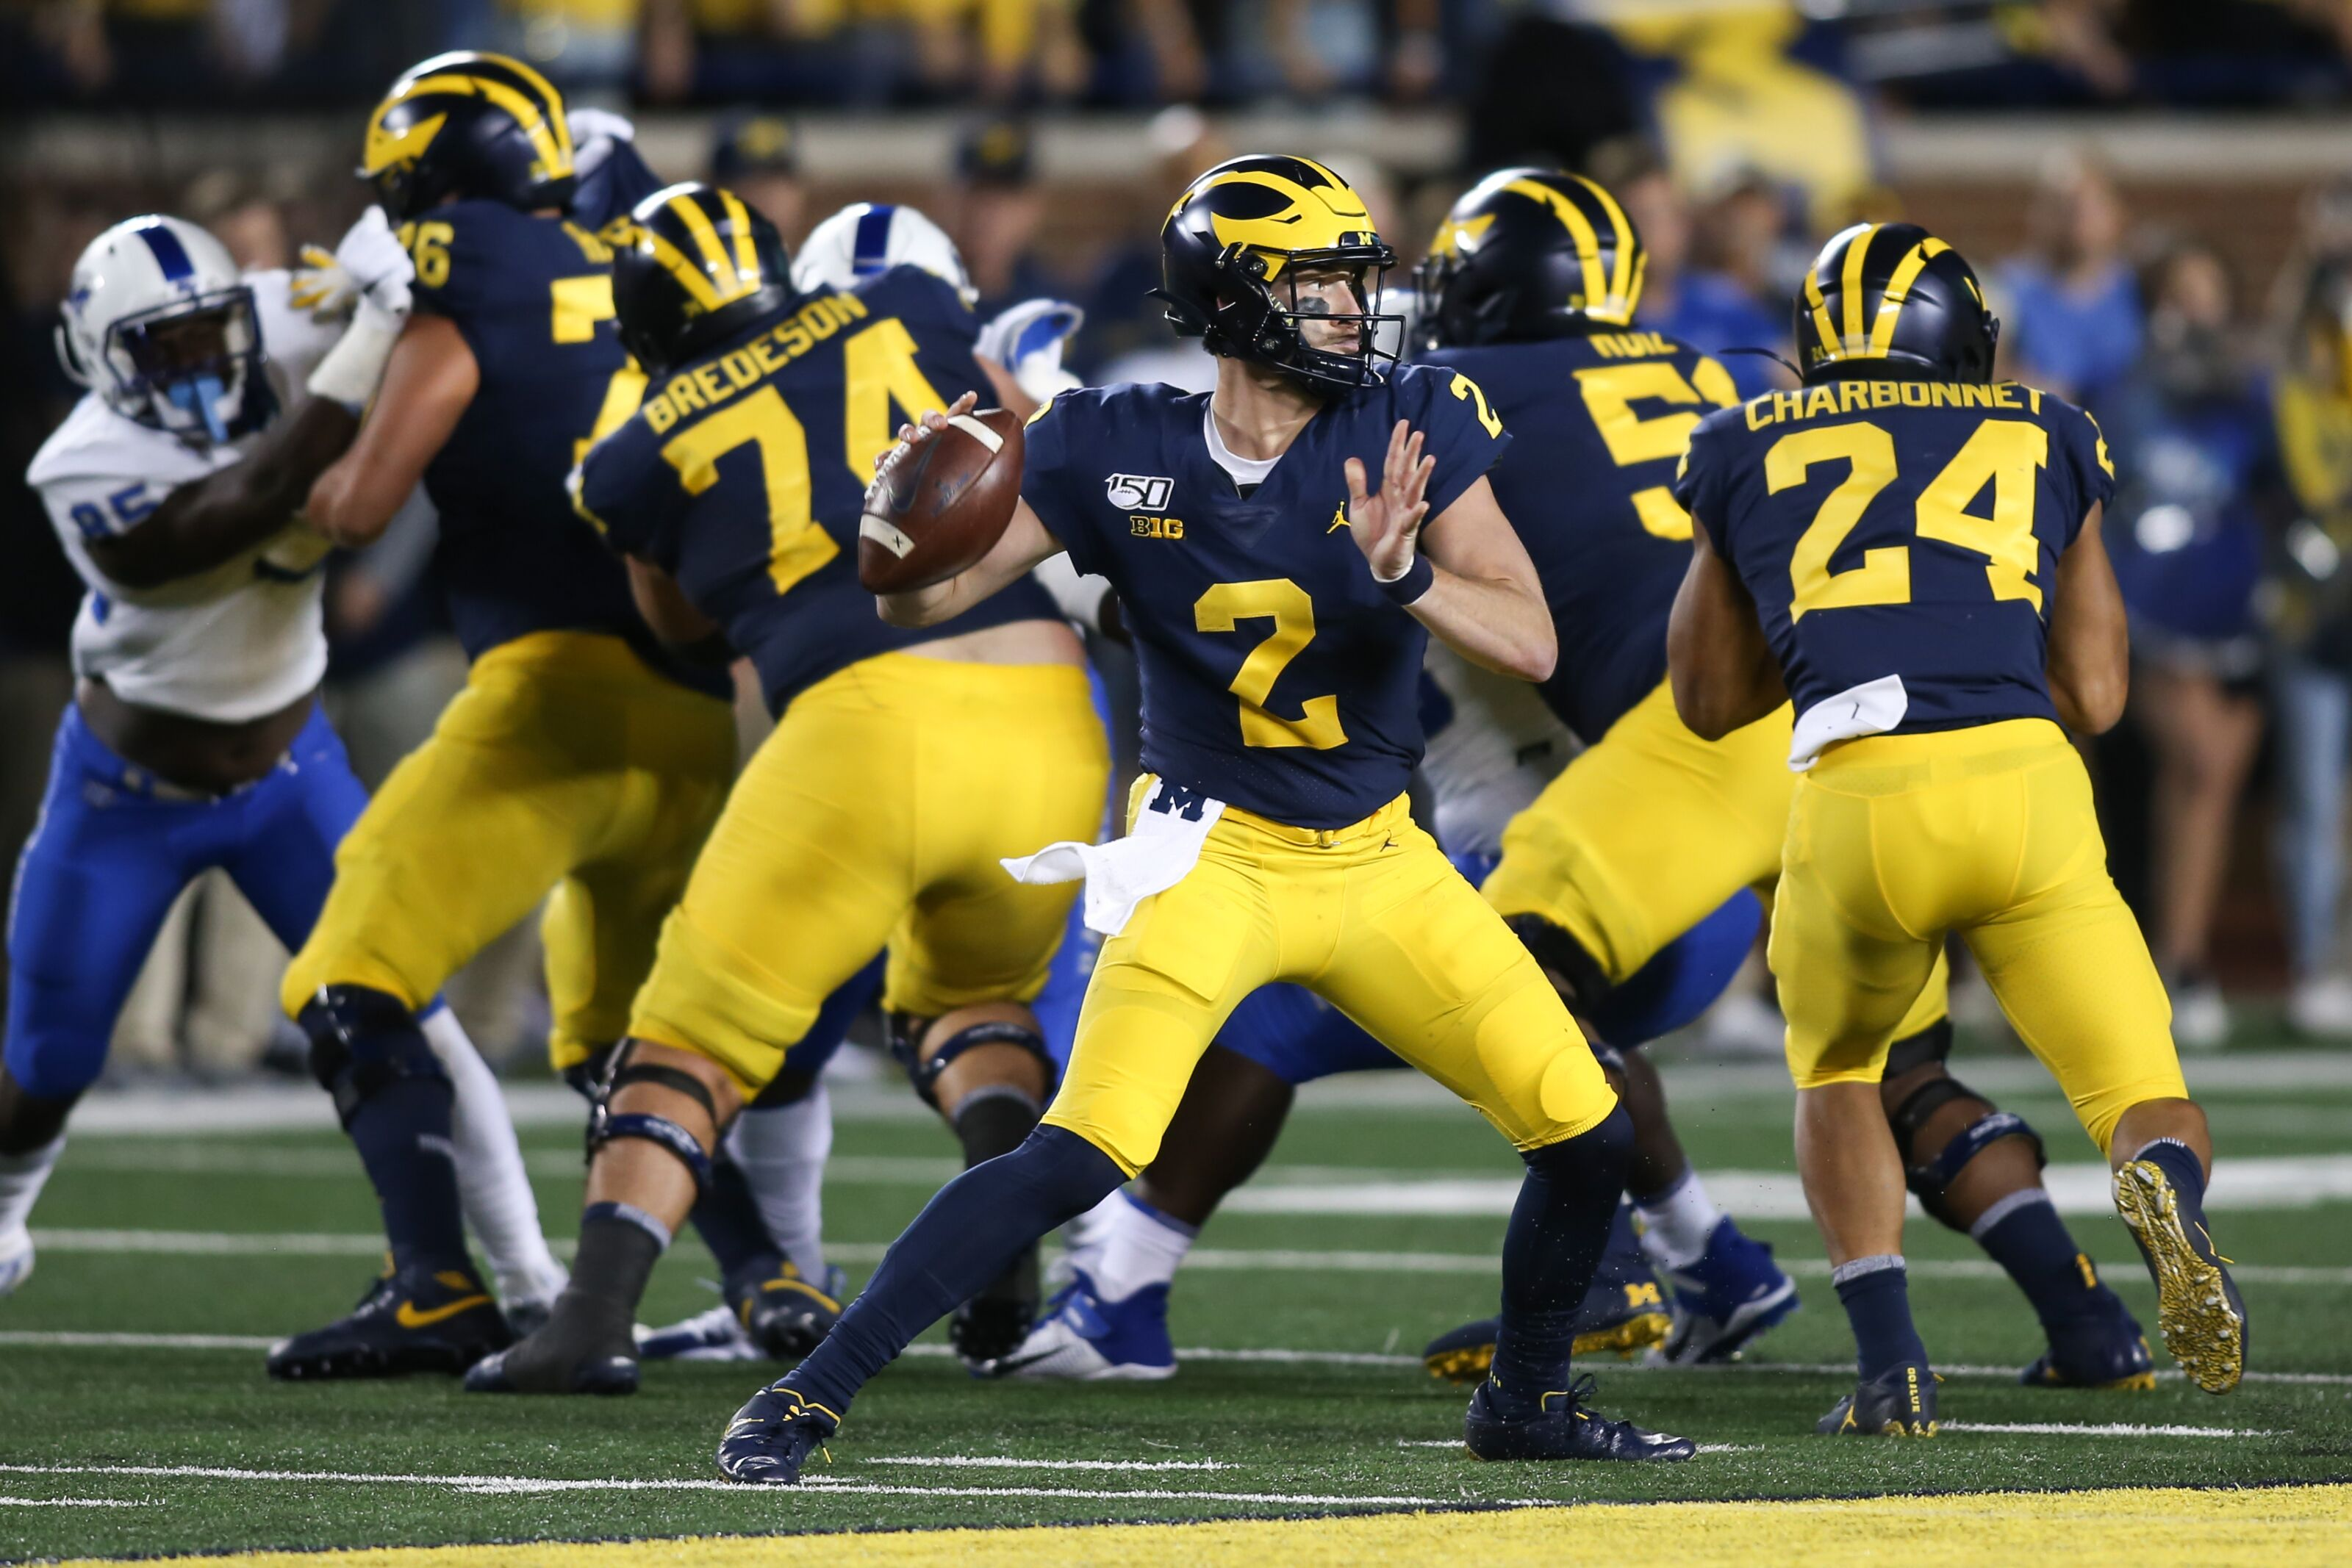 Michigan needs a big win over Wisconsin to silence critics